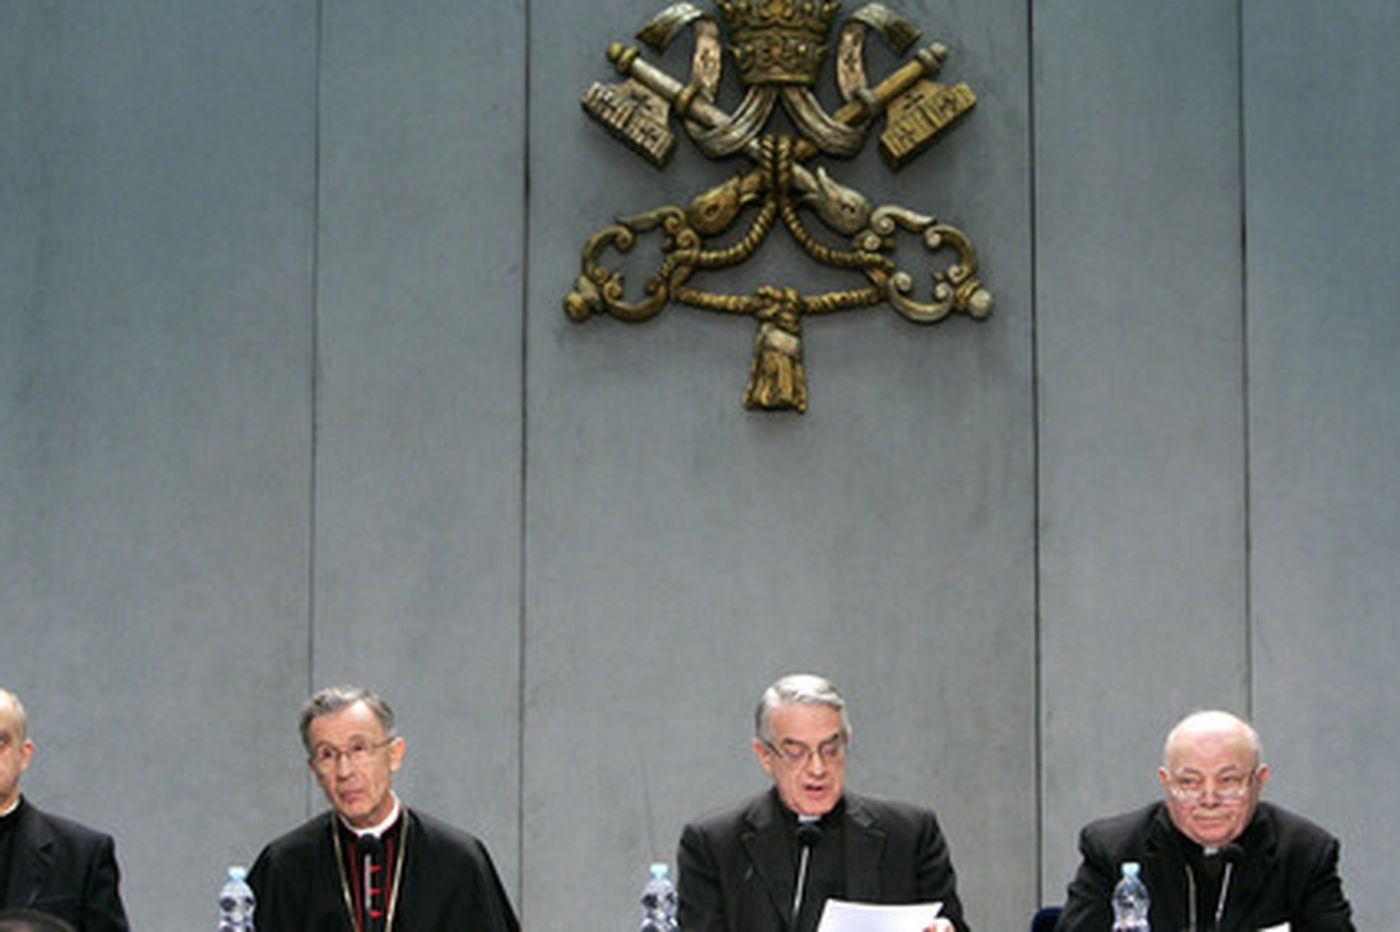 The Vatican and bioethics